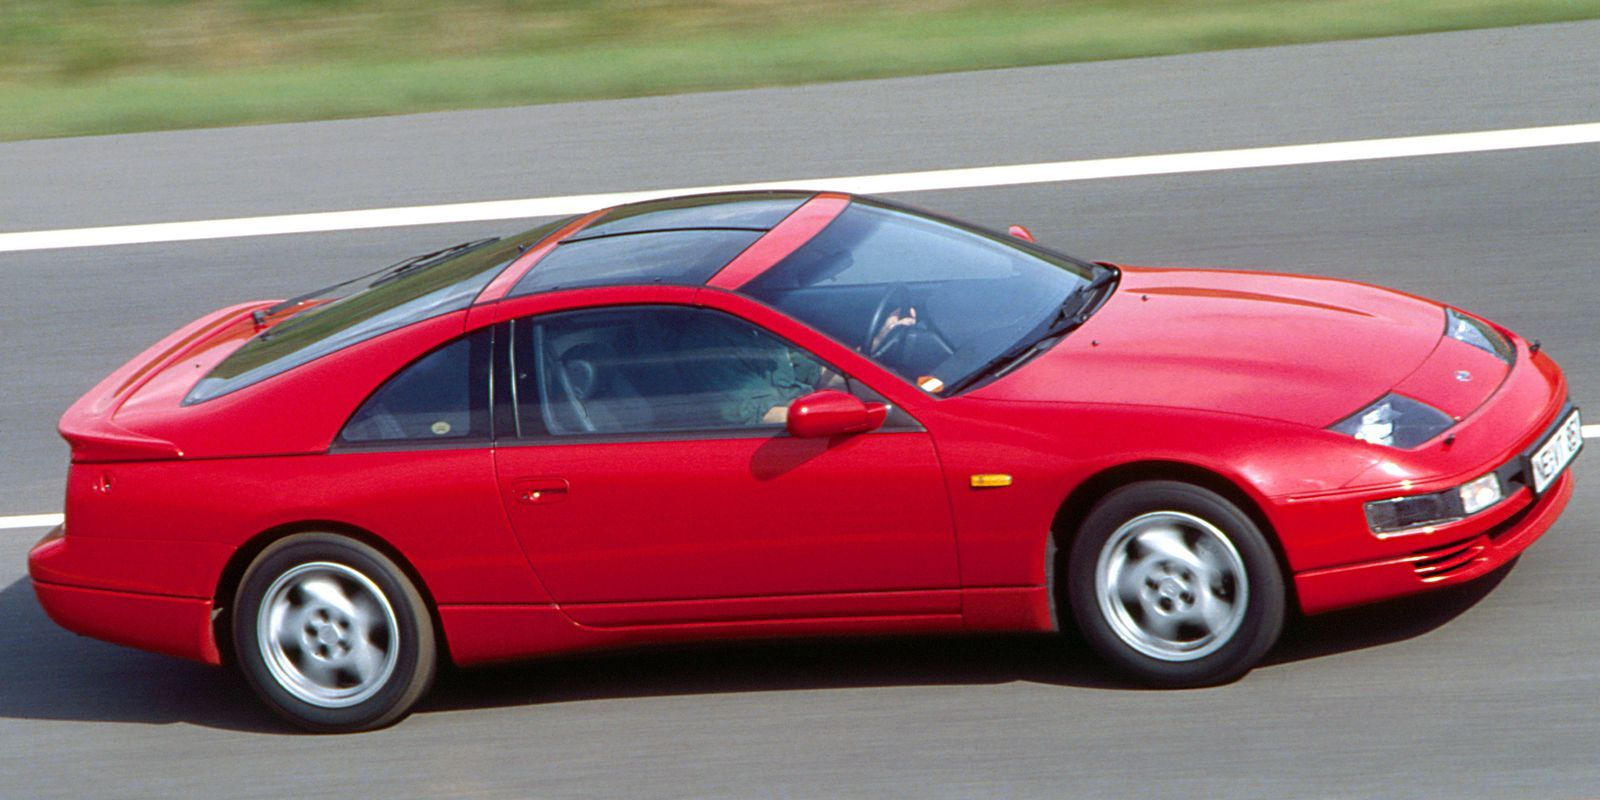 10 Dream Cars of the '90s That Are Now Affordable Nissan